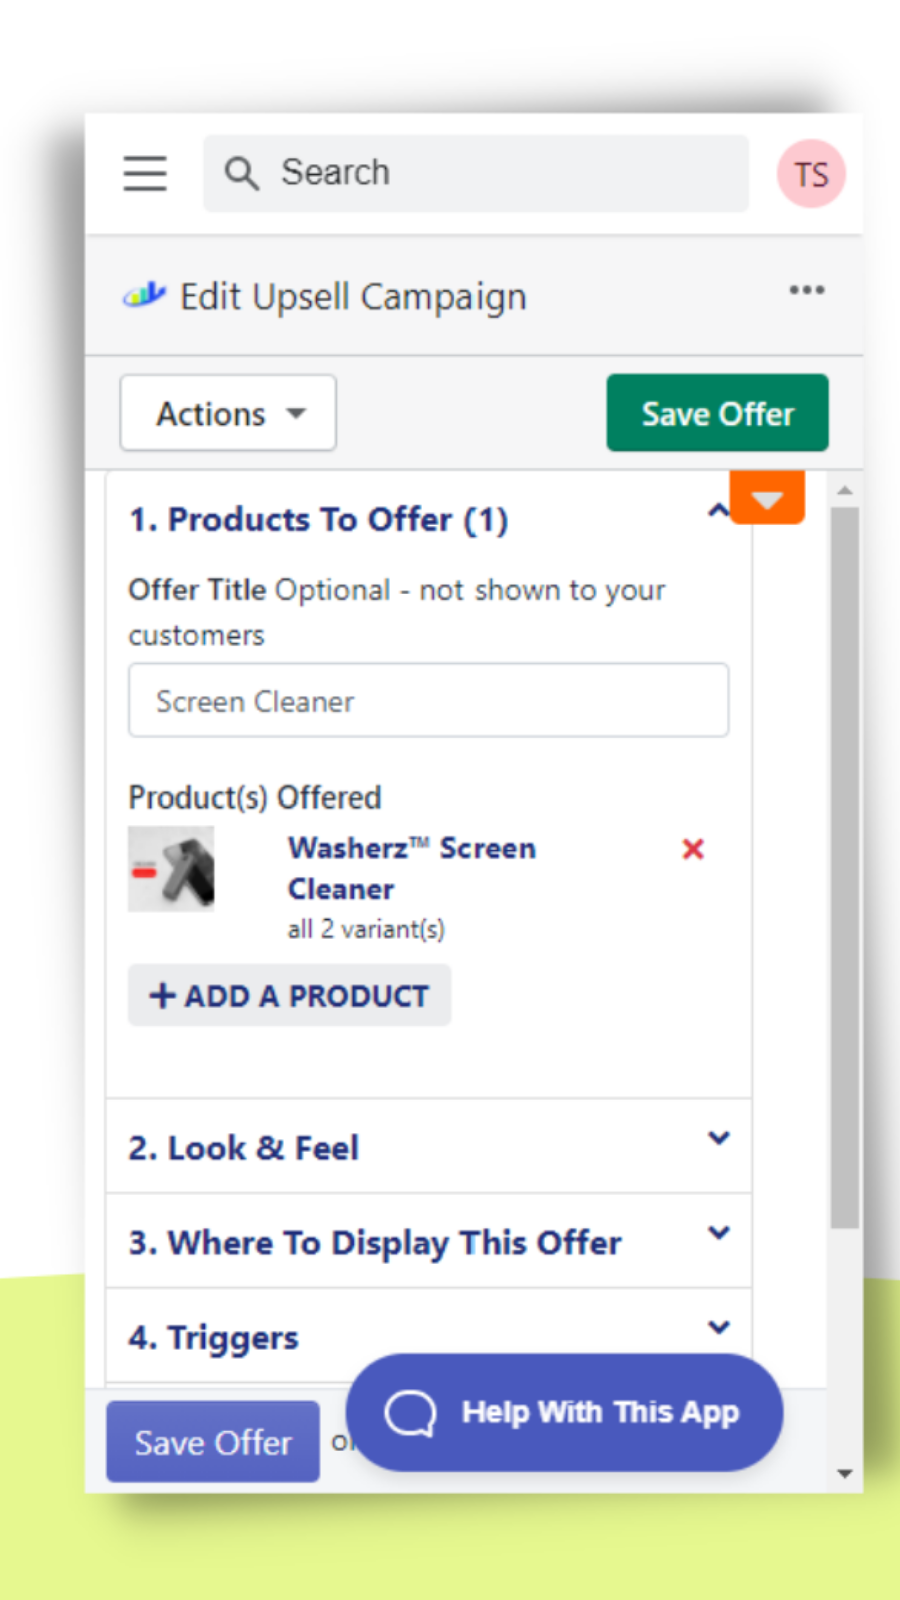 Create offers on the go & get support on mobile devices